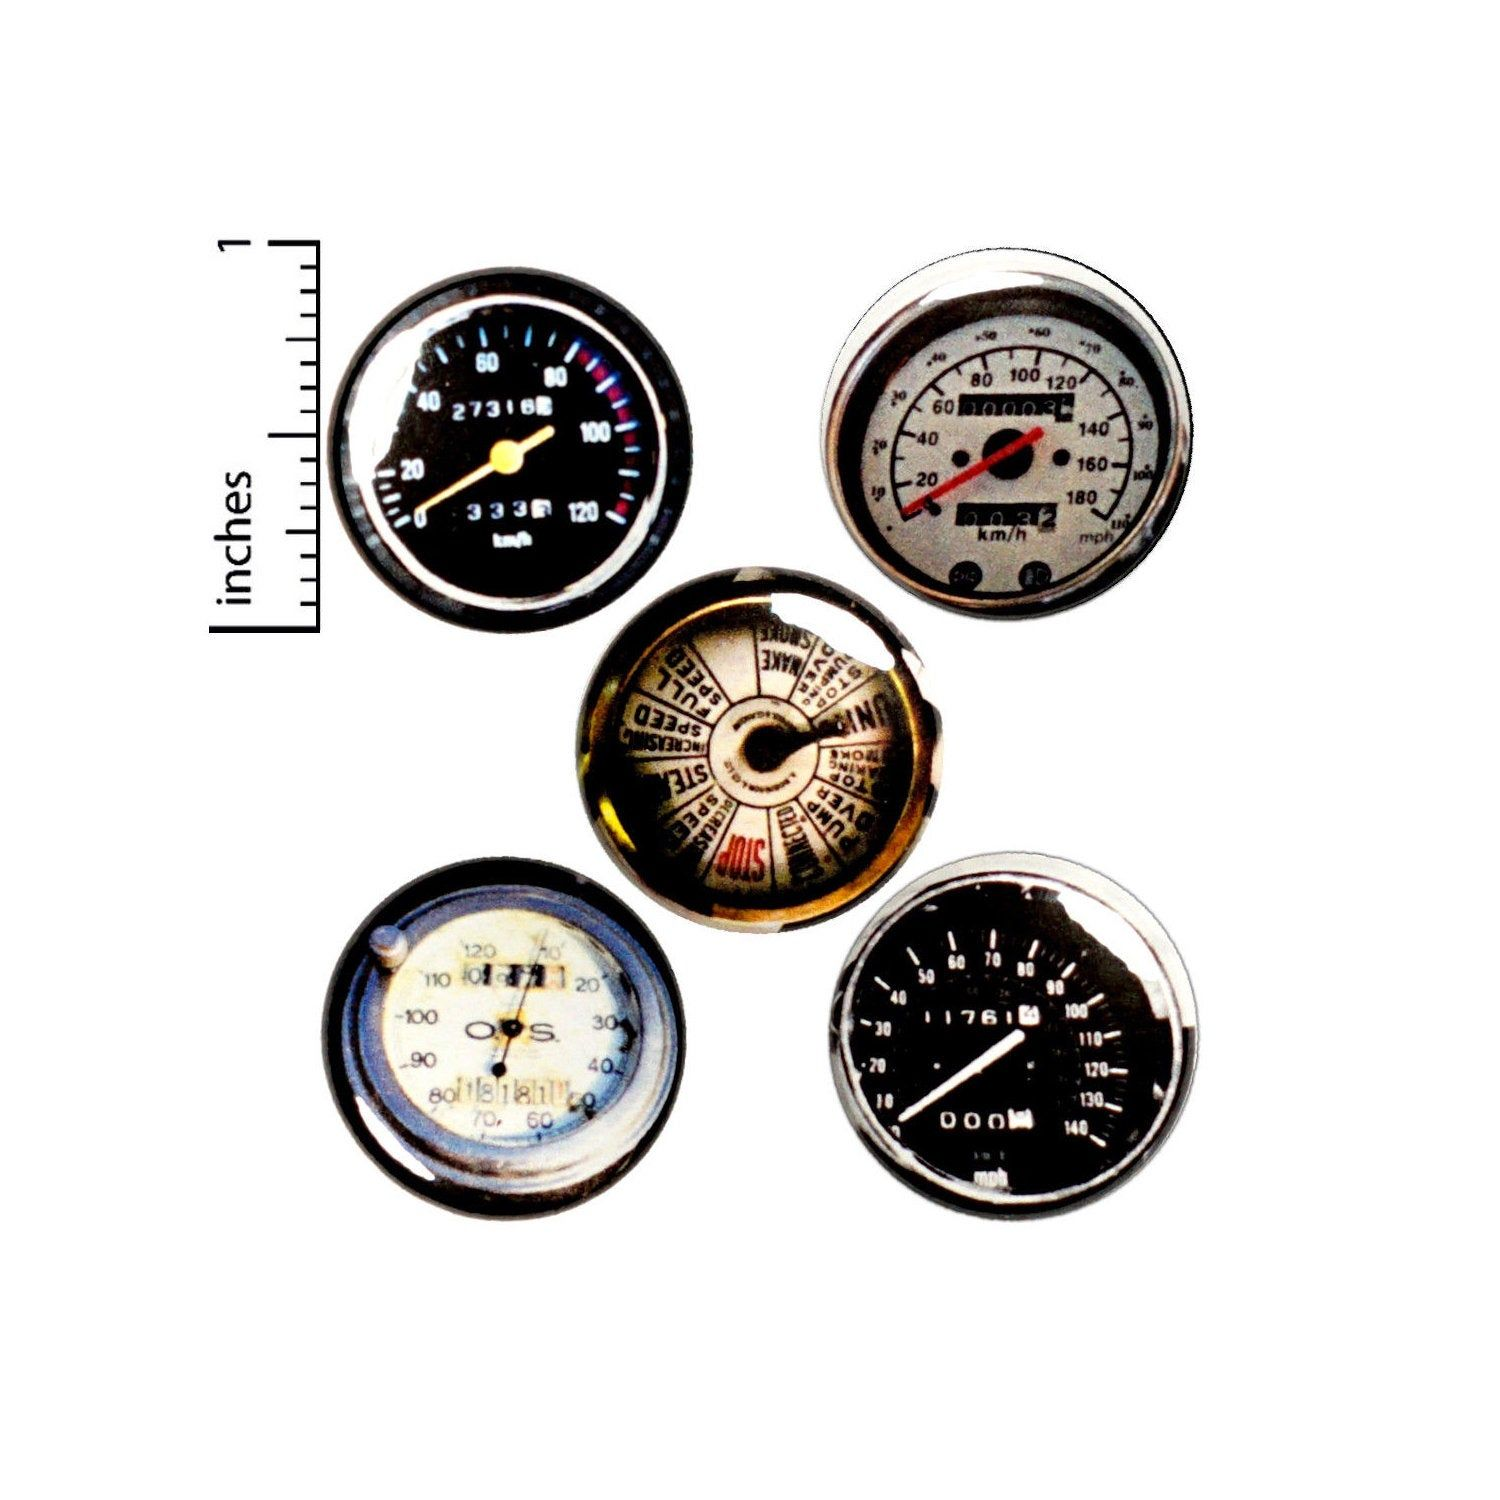 Vintage Style Speedometer Pin For Backpack Buttons Or Fridge Magnets Dieselpunk Gifts Steampunk Backpack Pins Gauges Gift Set 1 E1 2 In 2020 Work Gifts Backpack Pins Dieselpunk